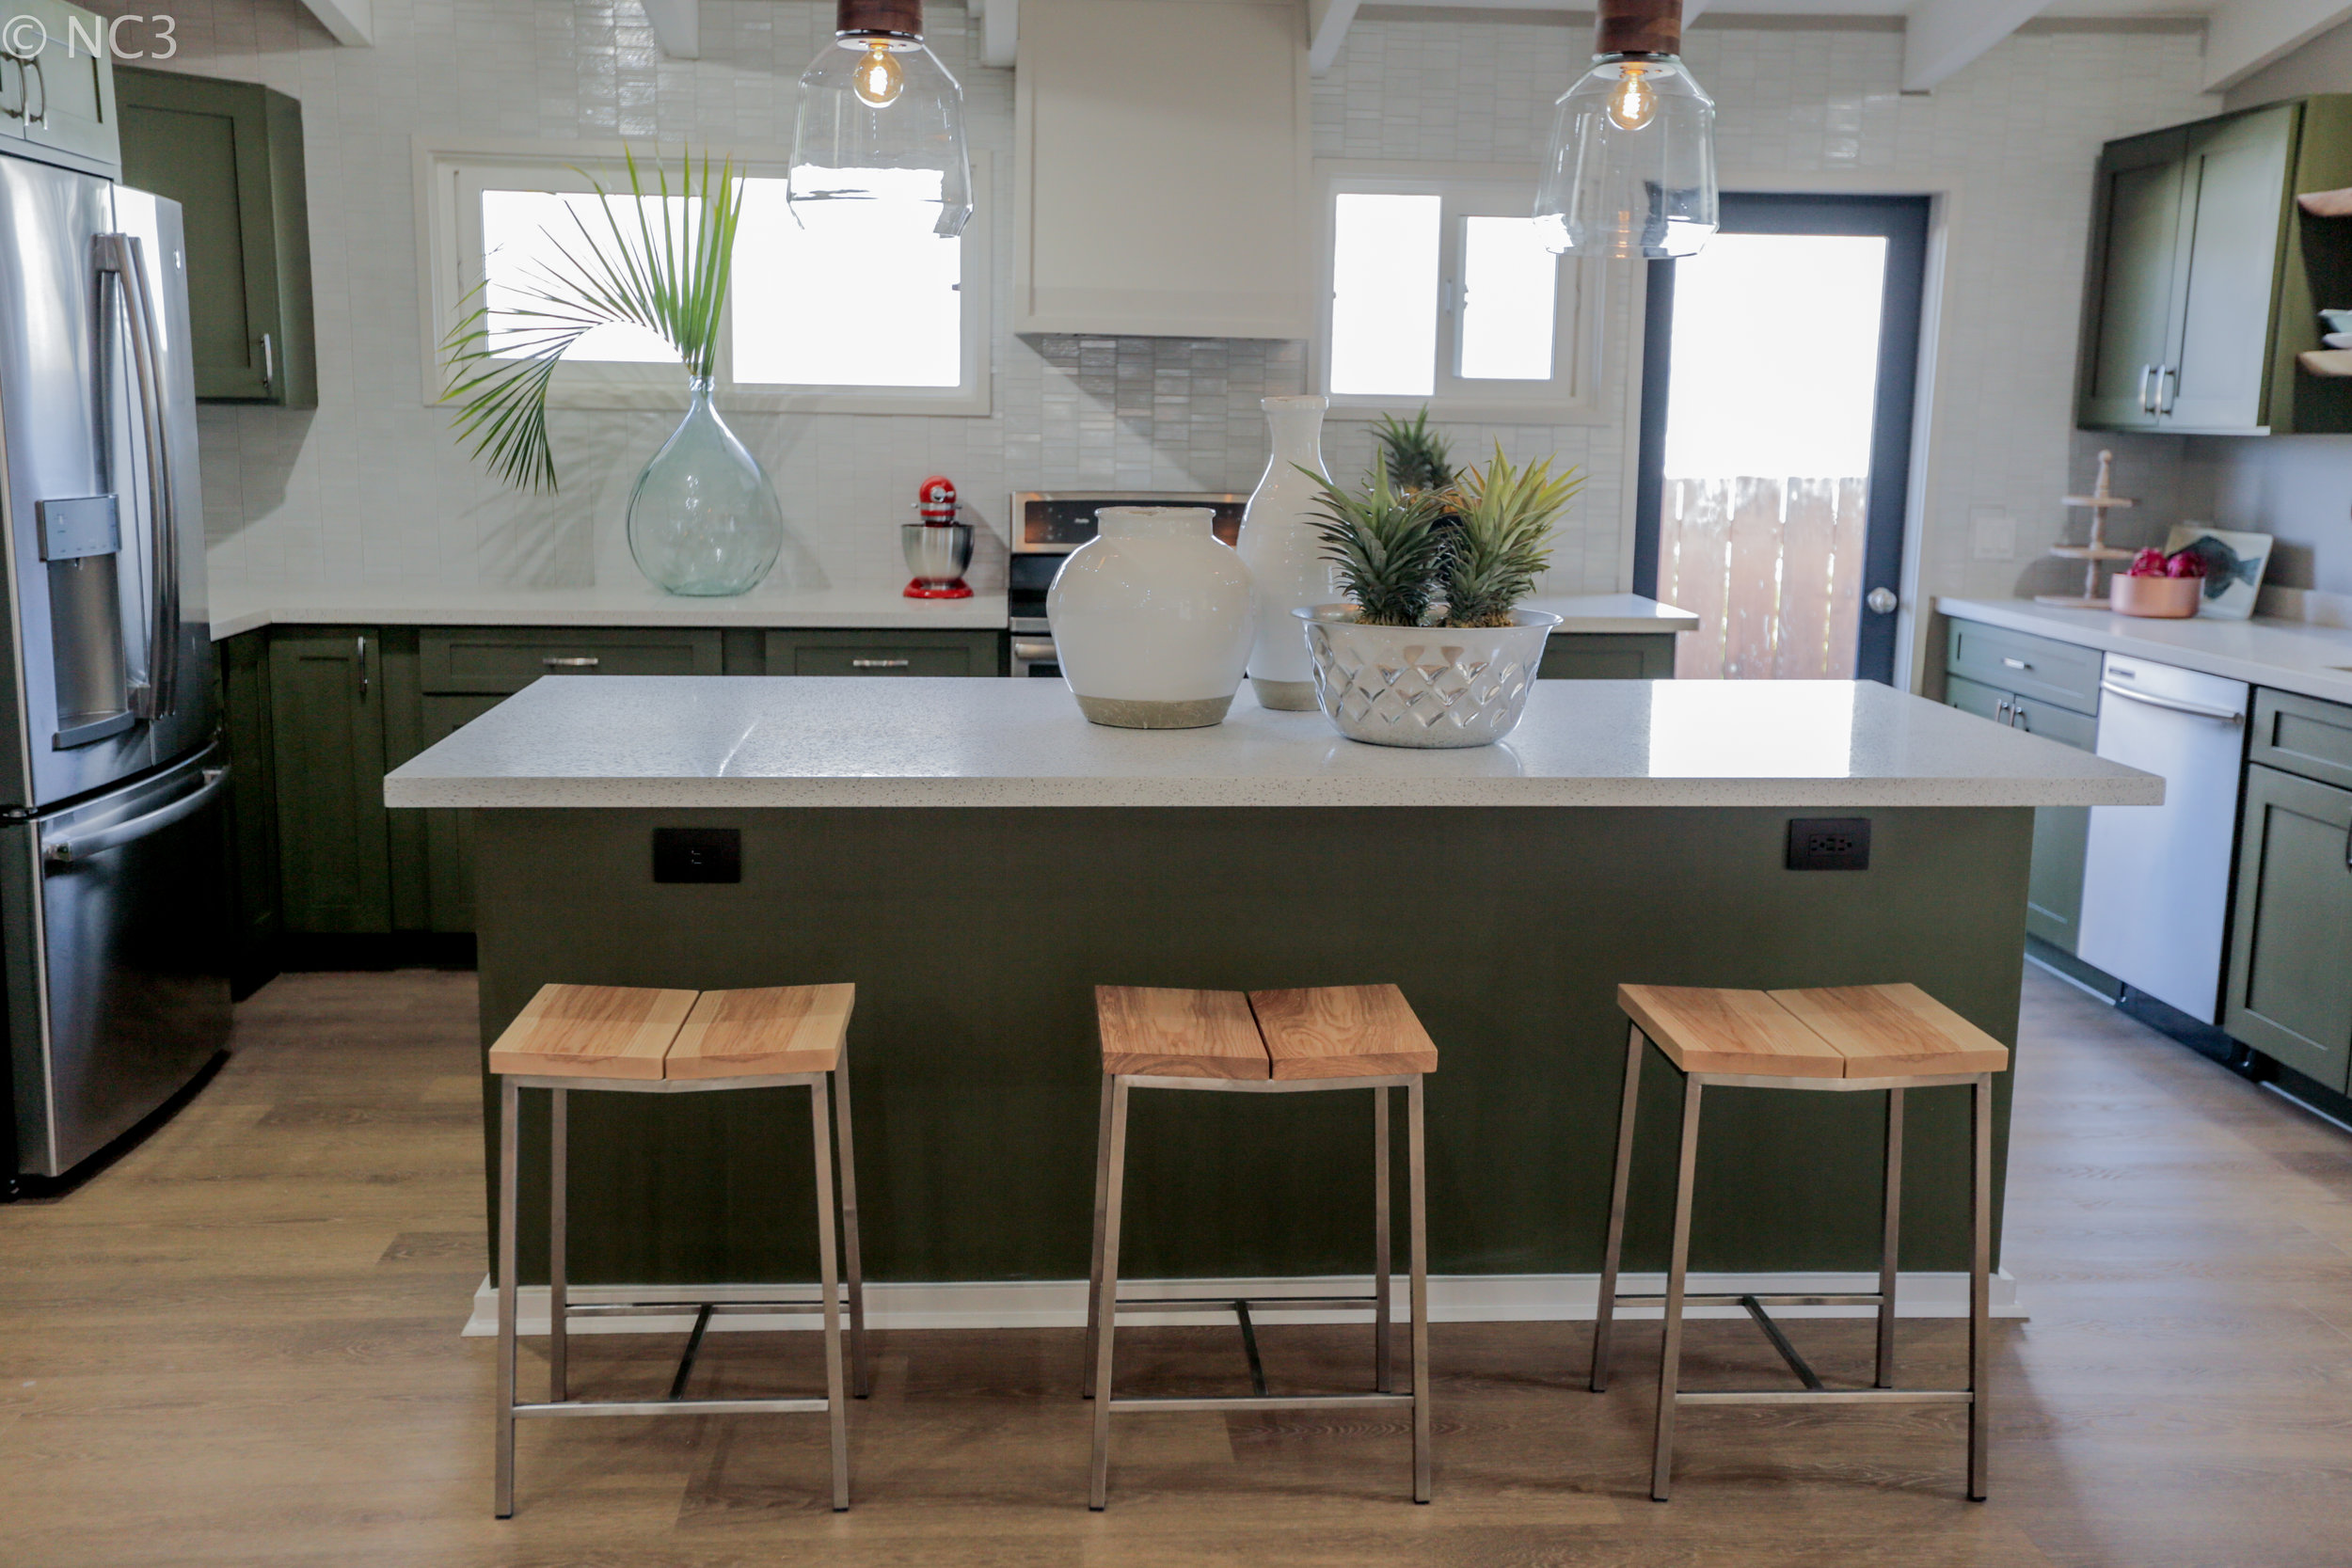 Kitchen Island_2758.jpg